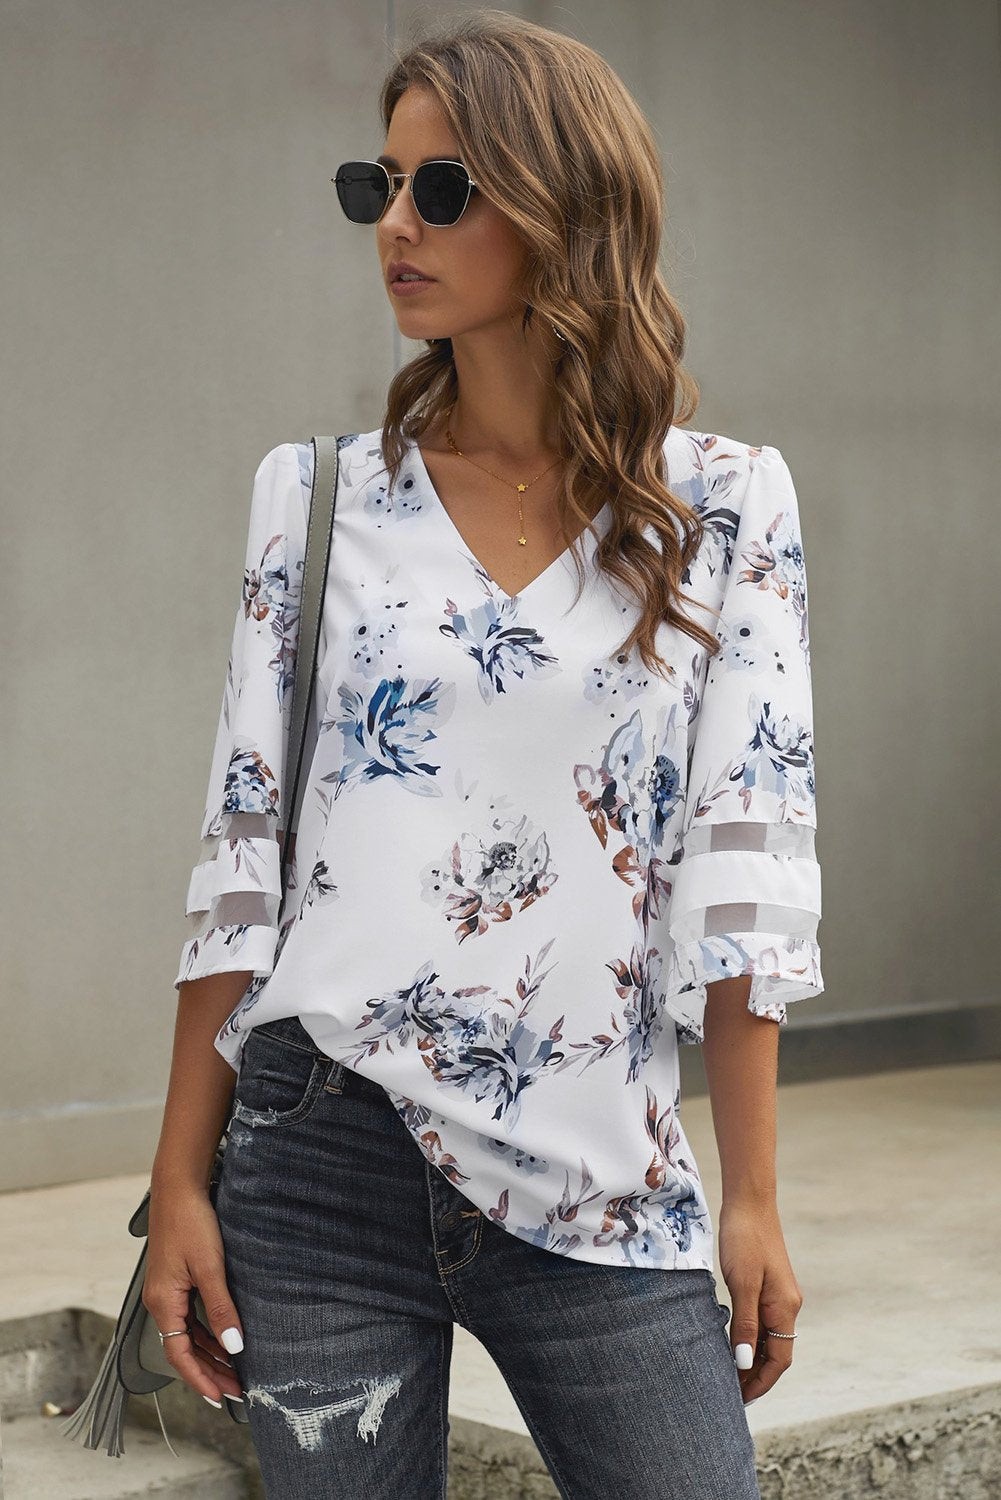 Chic 3/4 Flared Sleeve White Floral Blouse